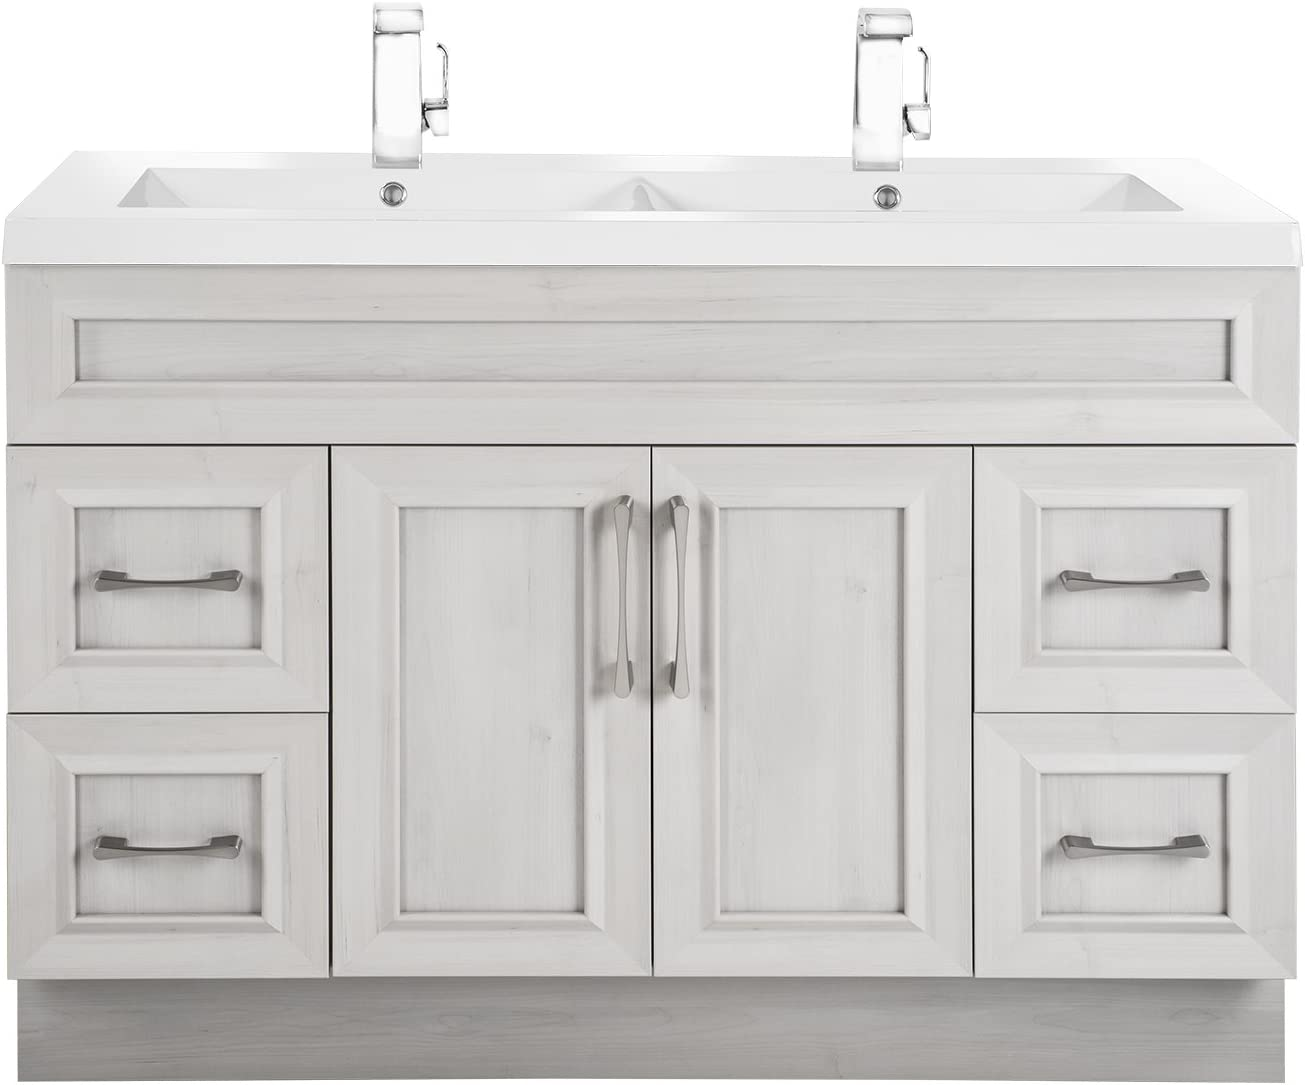 Cutler Kitchen Bath CCMCTR48DBT Classic Transitional 48 in. Double Bathroom Vanity, Meadows Cove